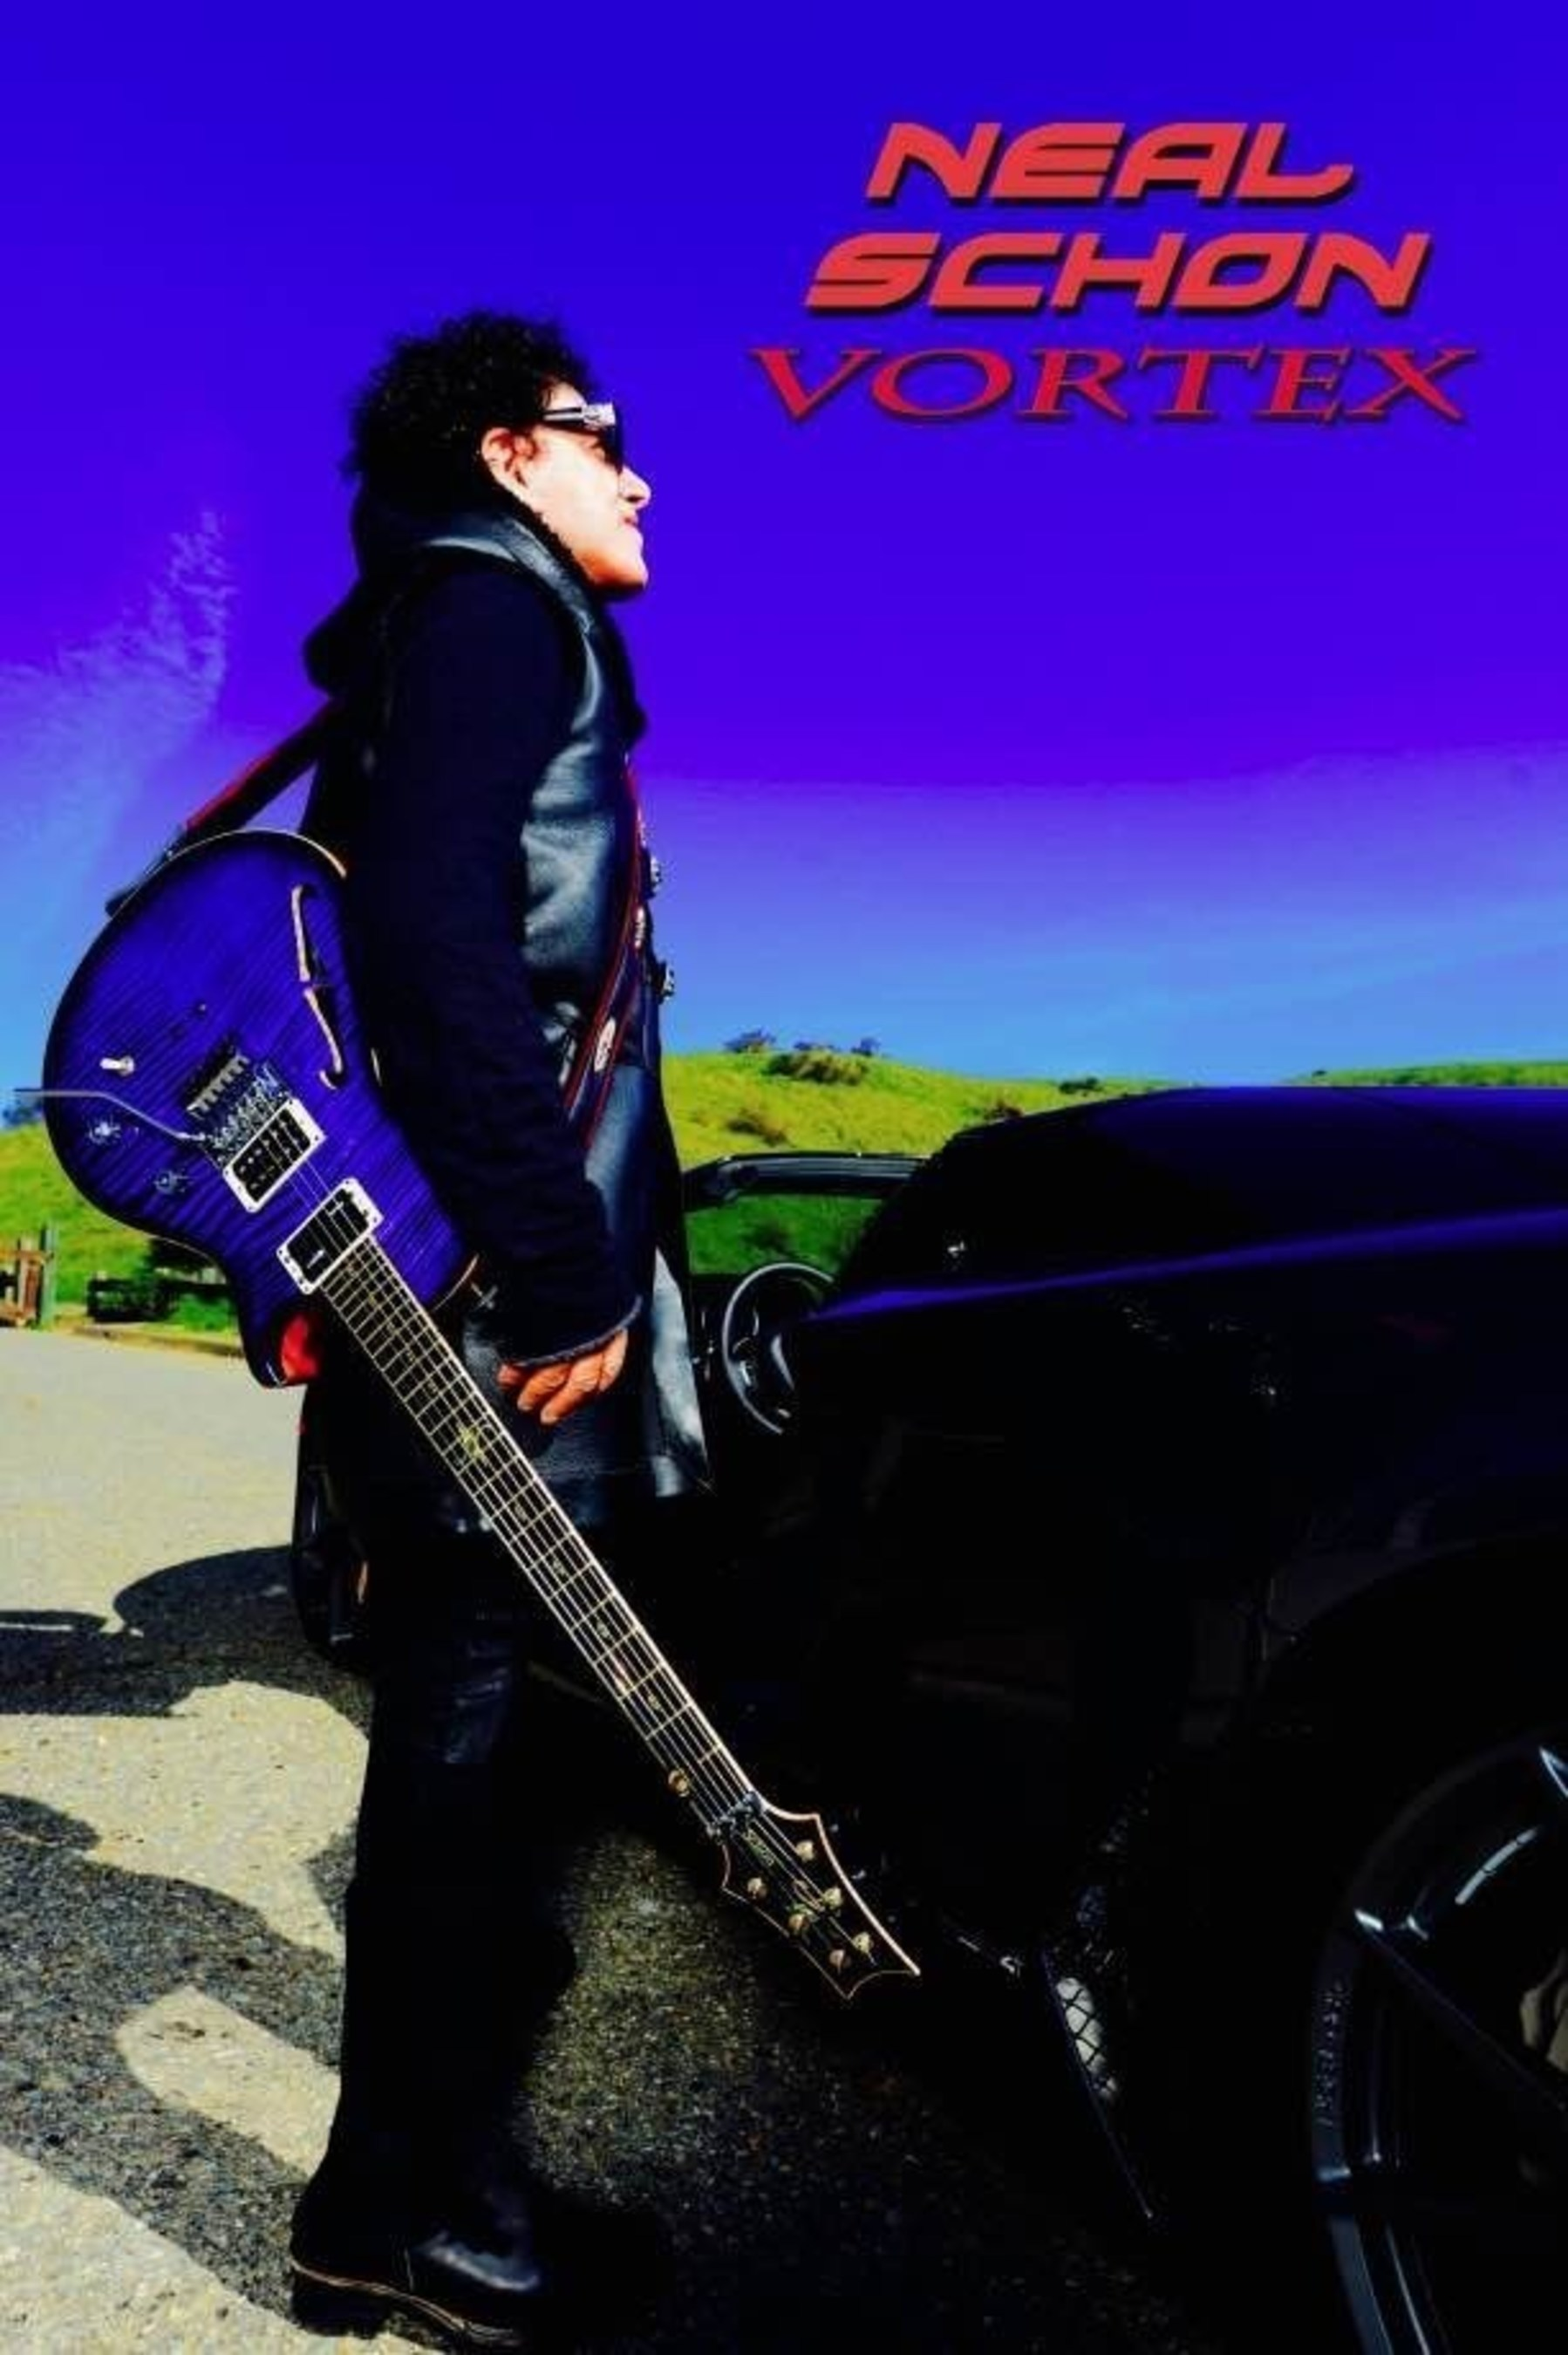 Neal Schon And Music Theories Recordings / MLG Announce The Release Of Vortex On June 23